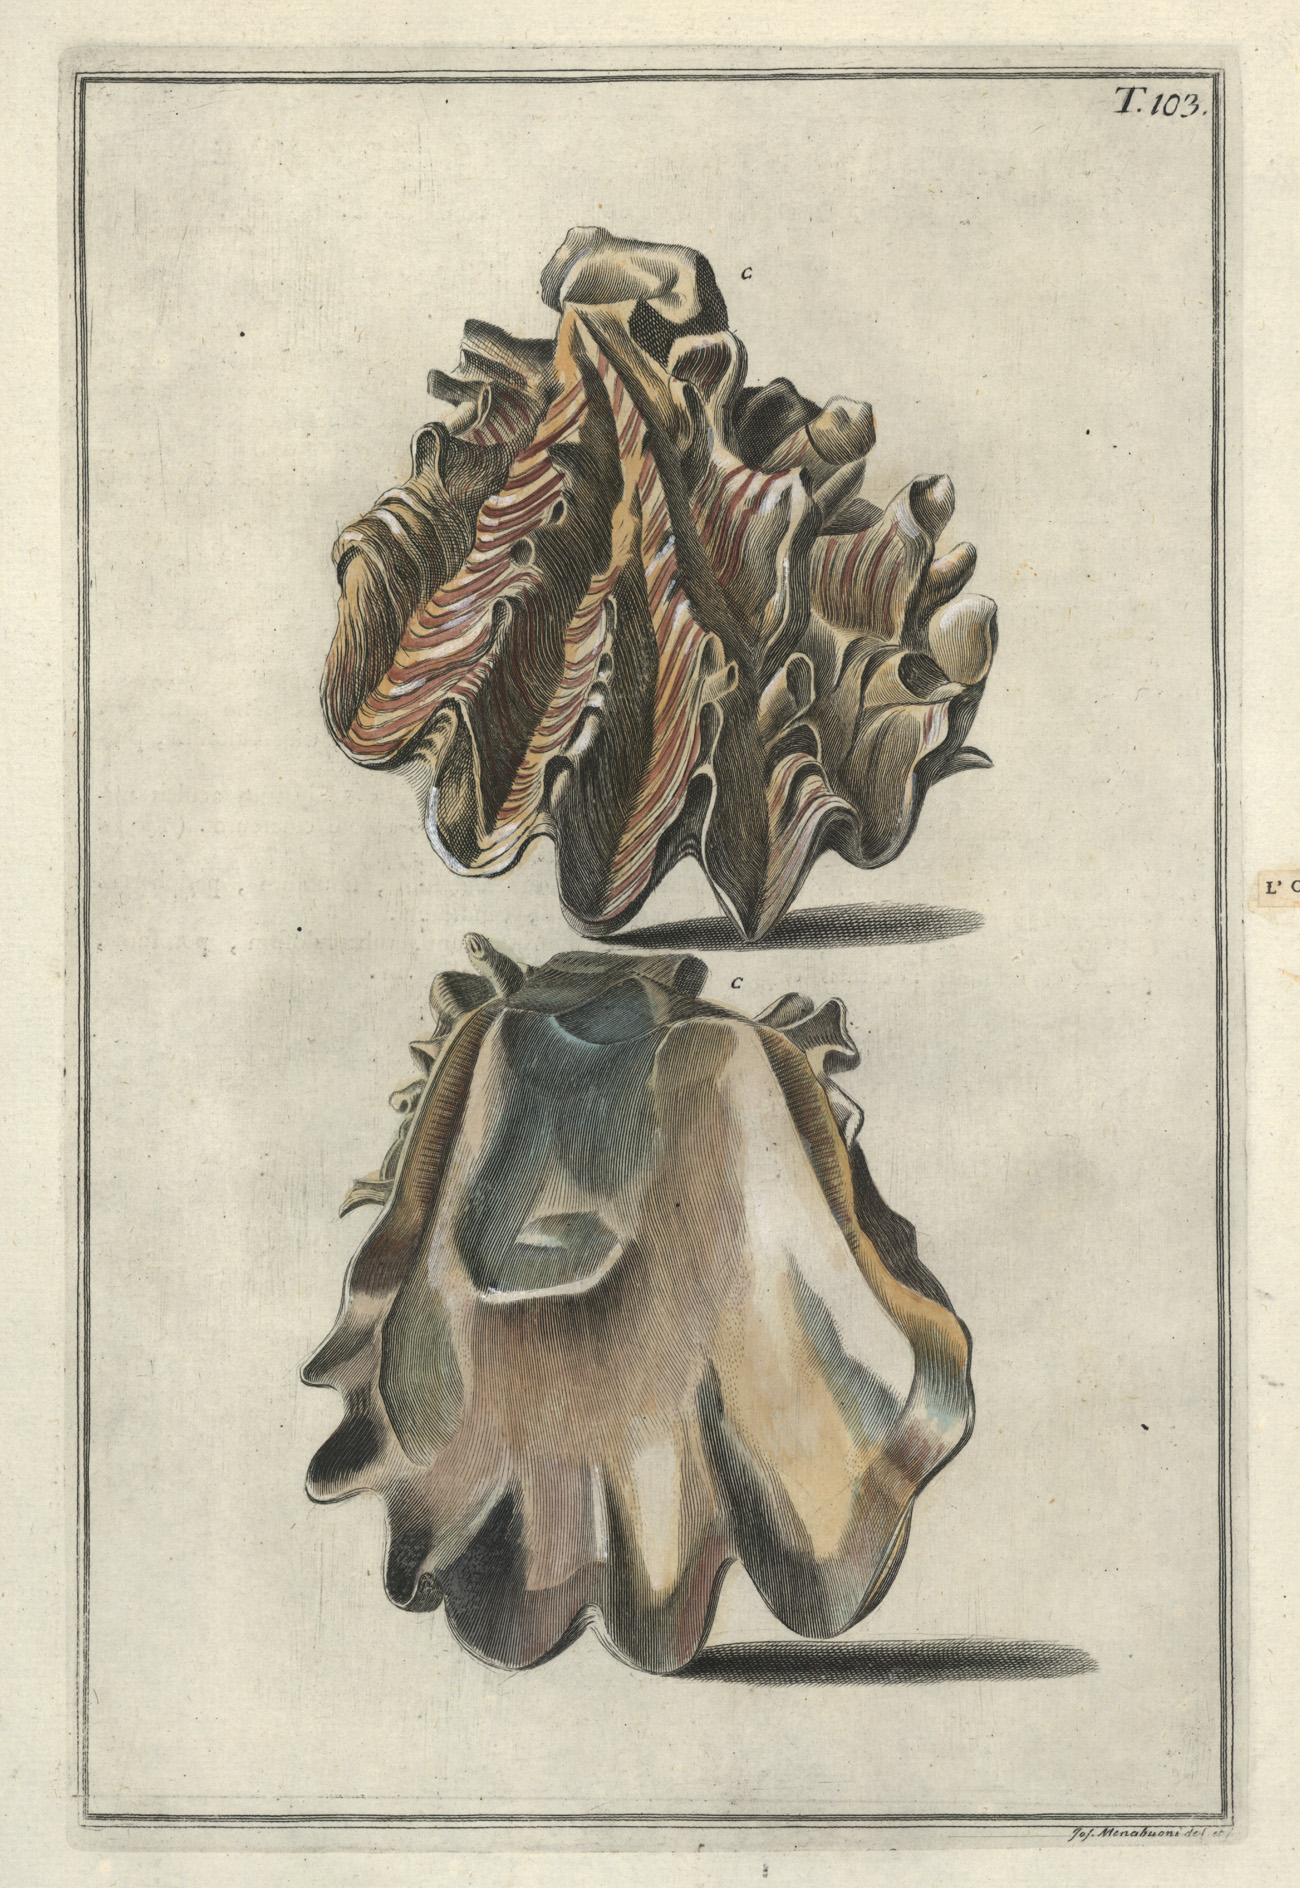 Gualtieri Antique Print of L'Oreille de Cochon Conchology c1742.